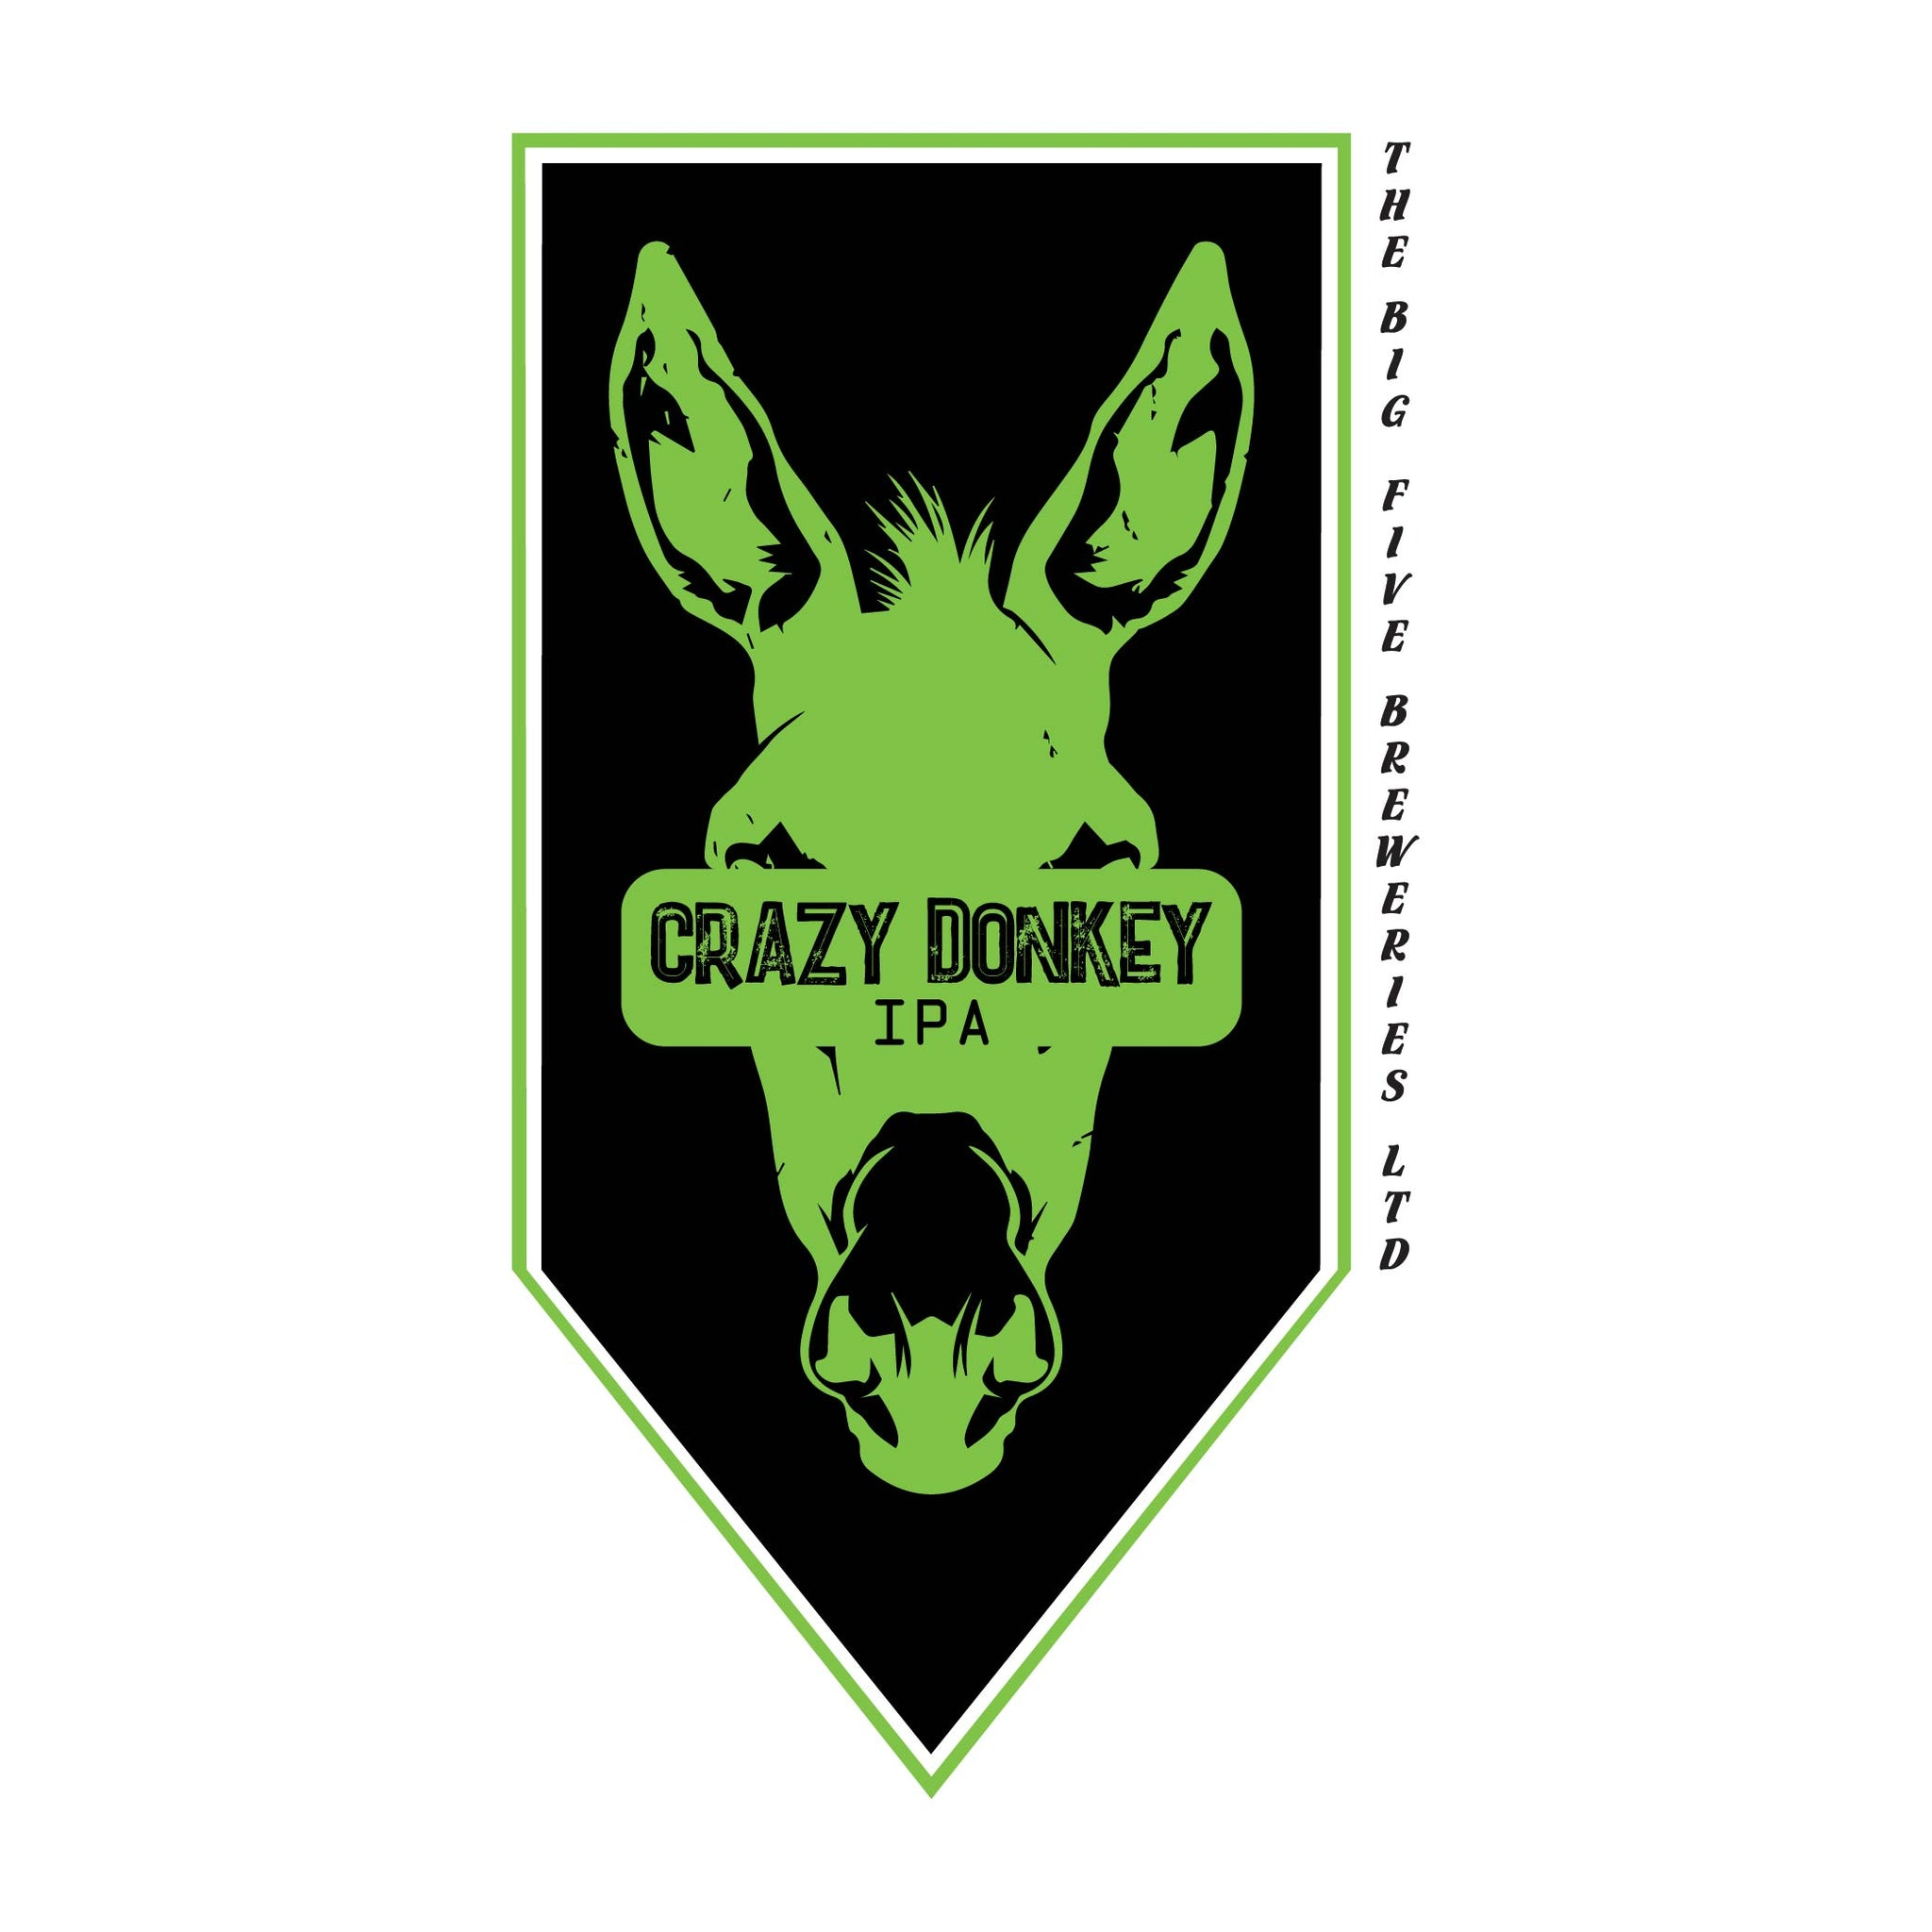 CRAZY DONKEY IPA GROWLER